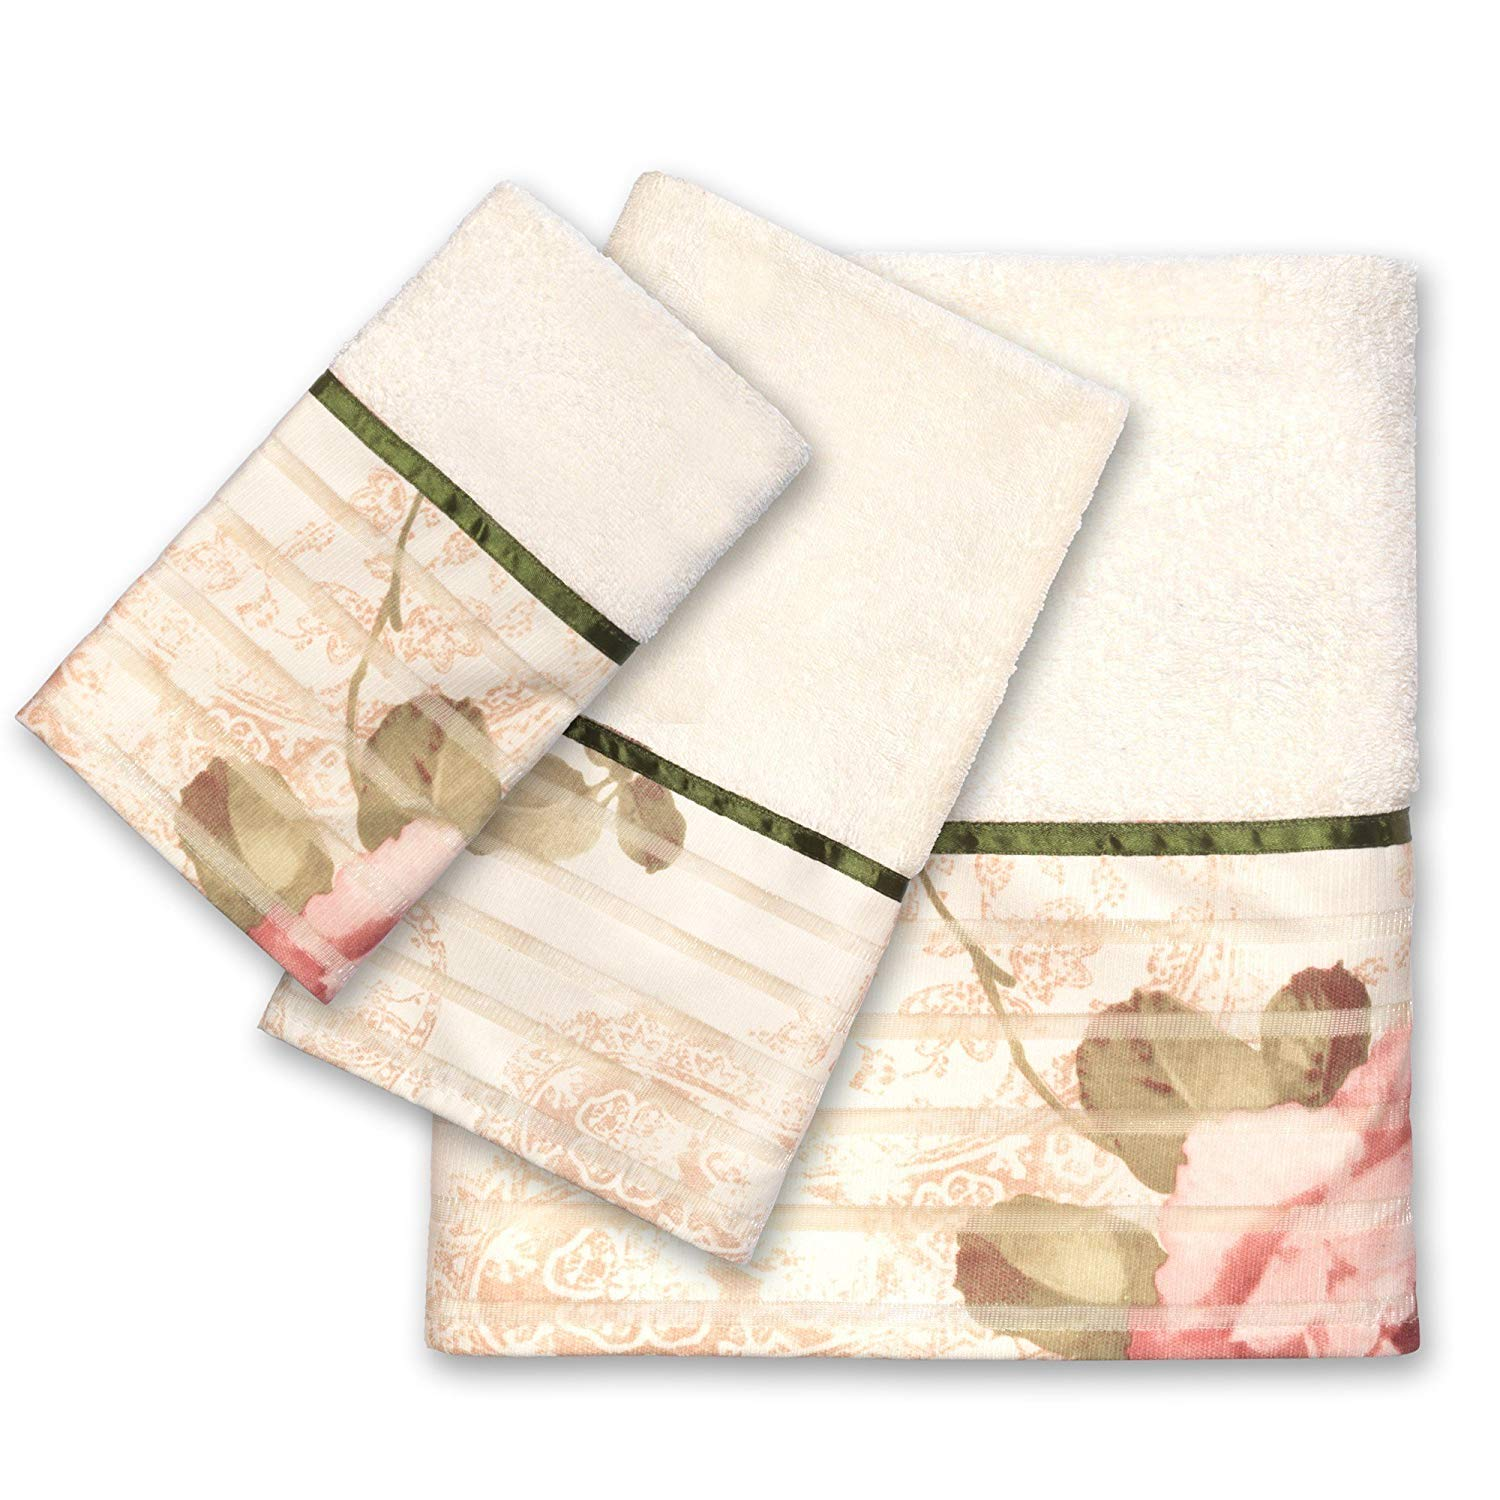 PH 3 Piece Beige Rose Printed Towel Set With 48 X 24 Inches Bath Towel, Light Brown Multi Floral Stripe Flowers Printed Soft Cozy Comfortable Modern Stylish Elegant Gorgeous Towels, Cotton